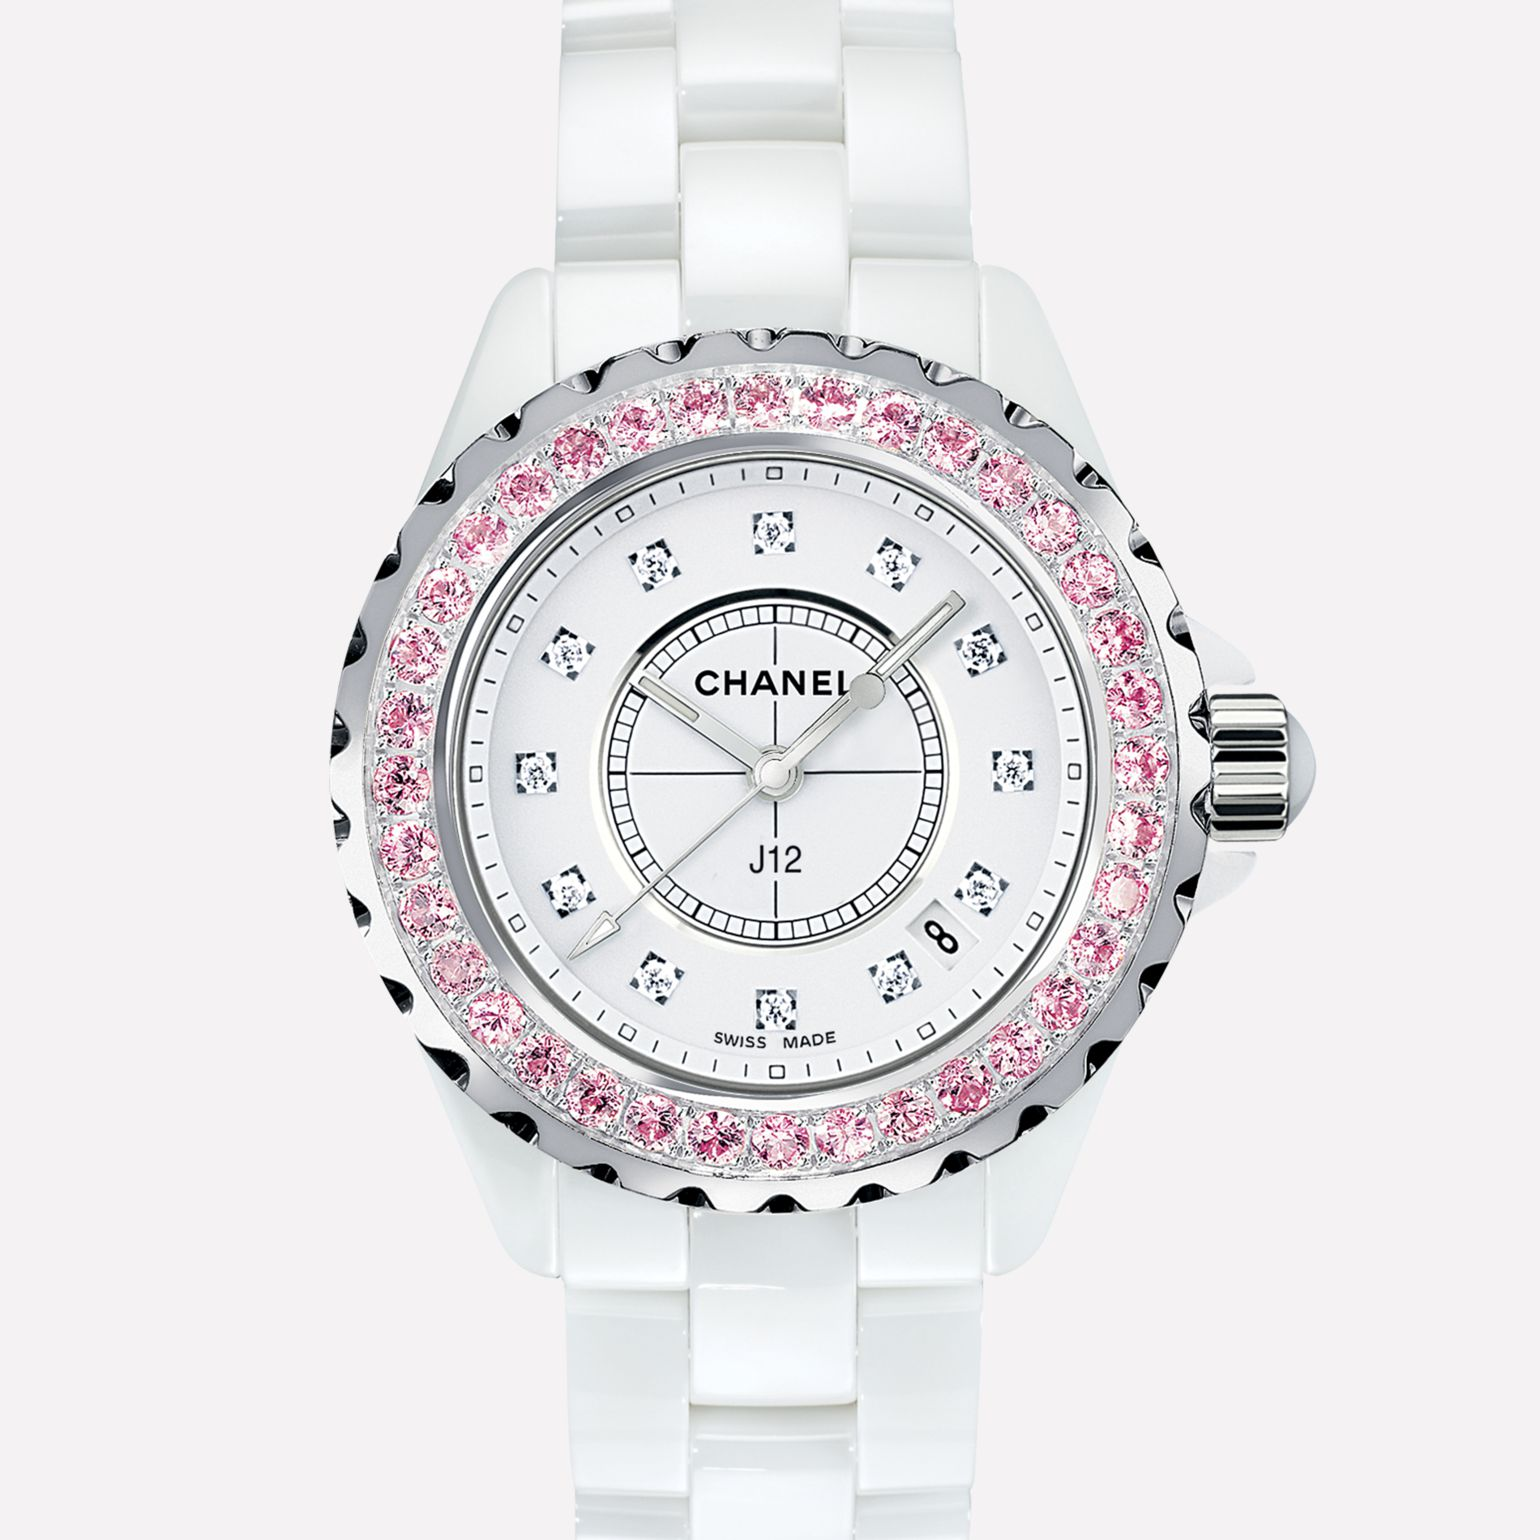 J12 White ceramic and steel, bezel set with pink sapphires, diamond indicators